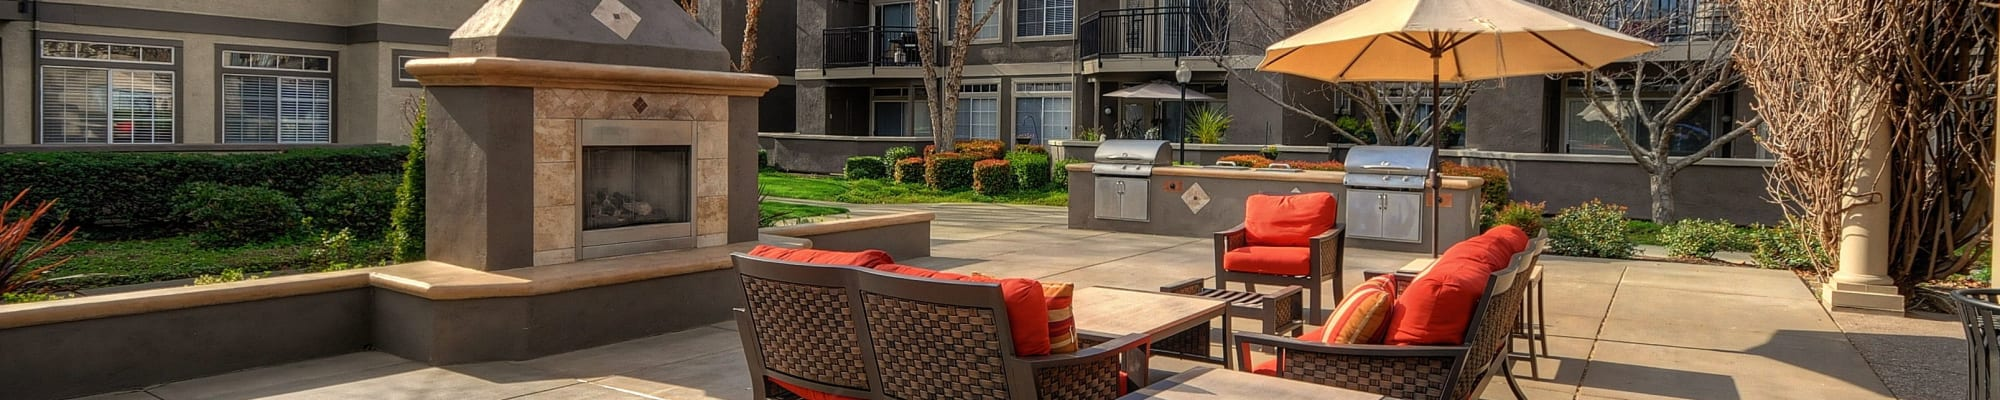 Login for users of our website at Larkspur Woods in Sacramento, California